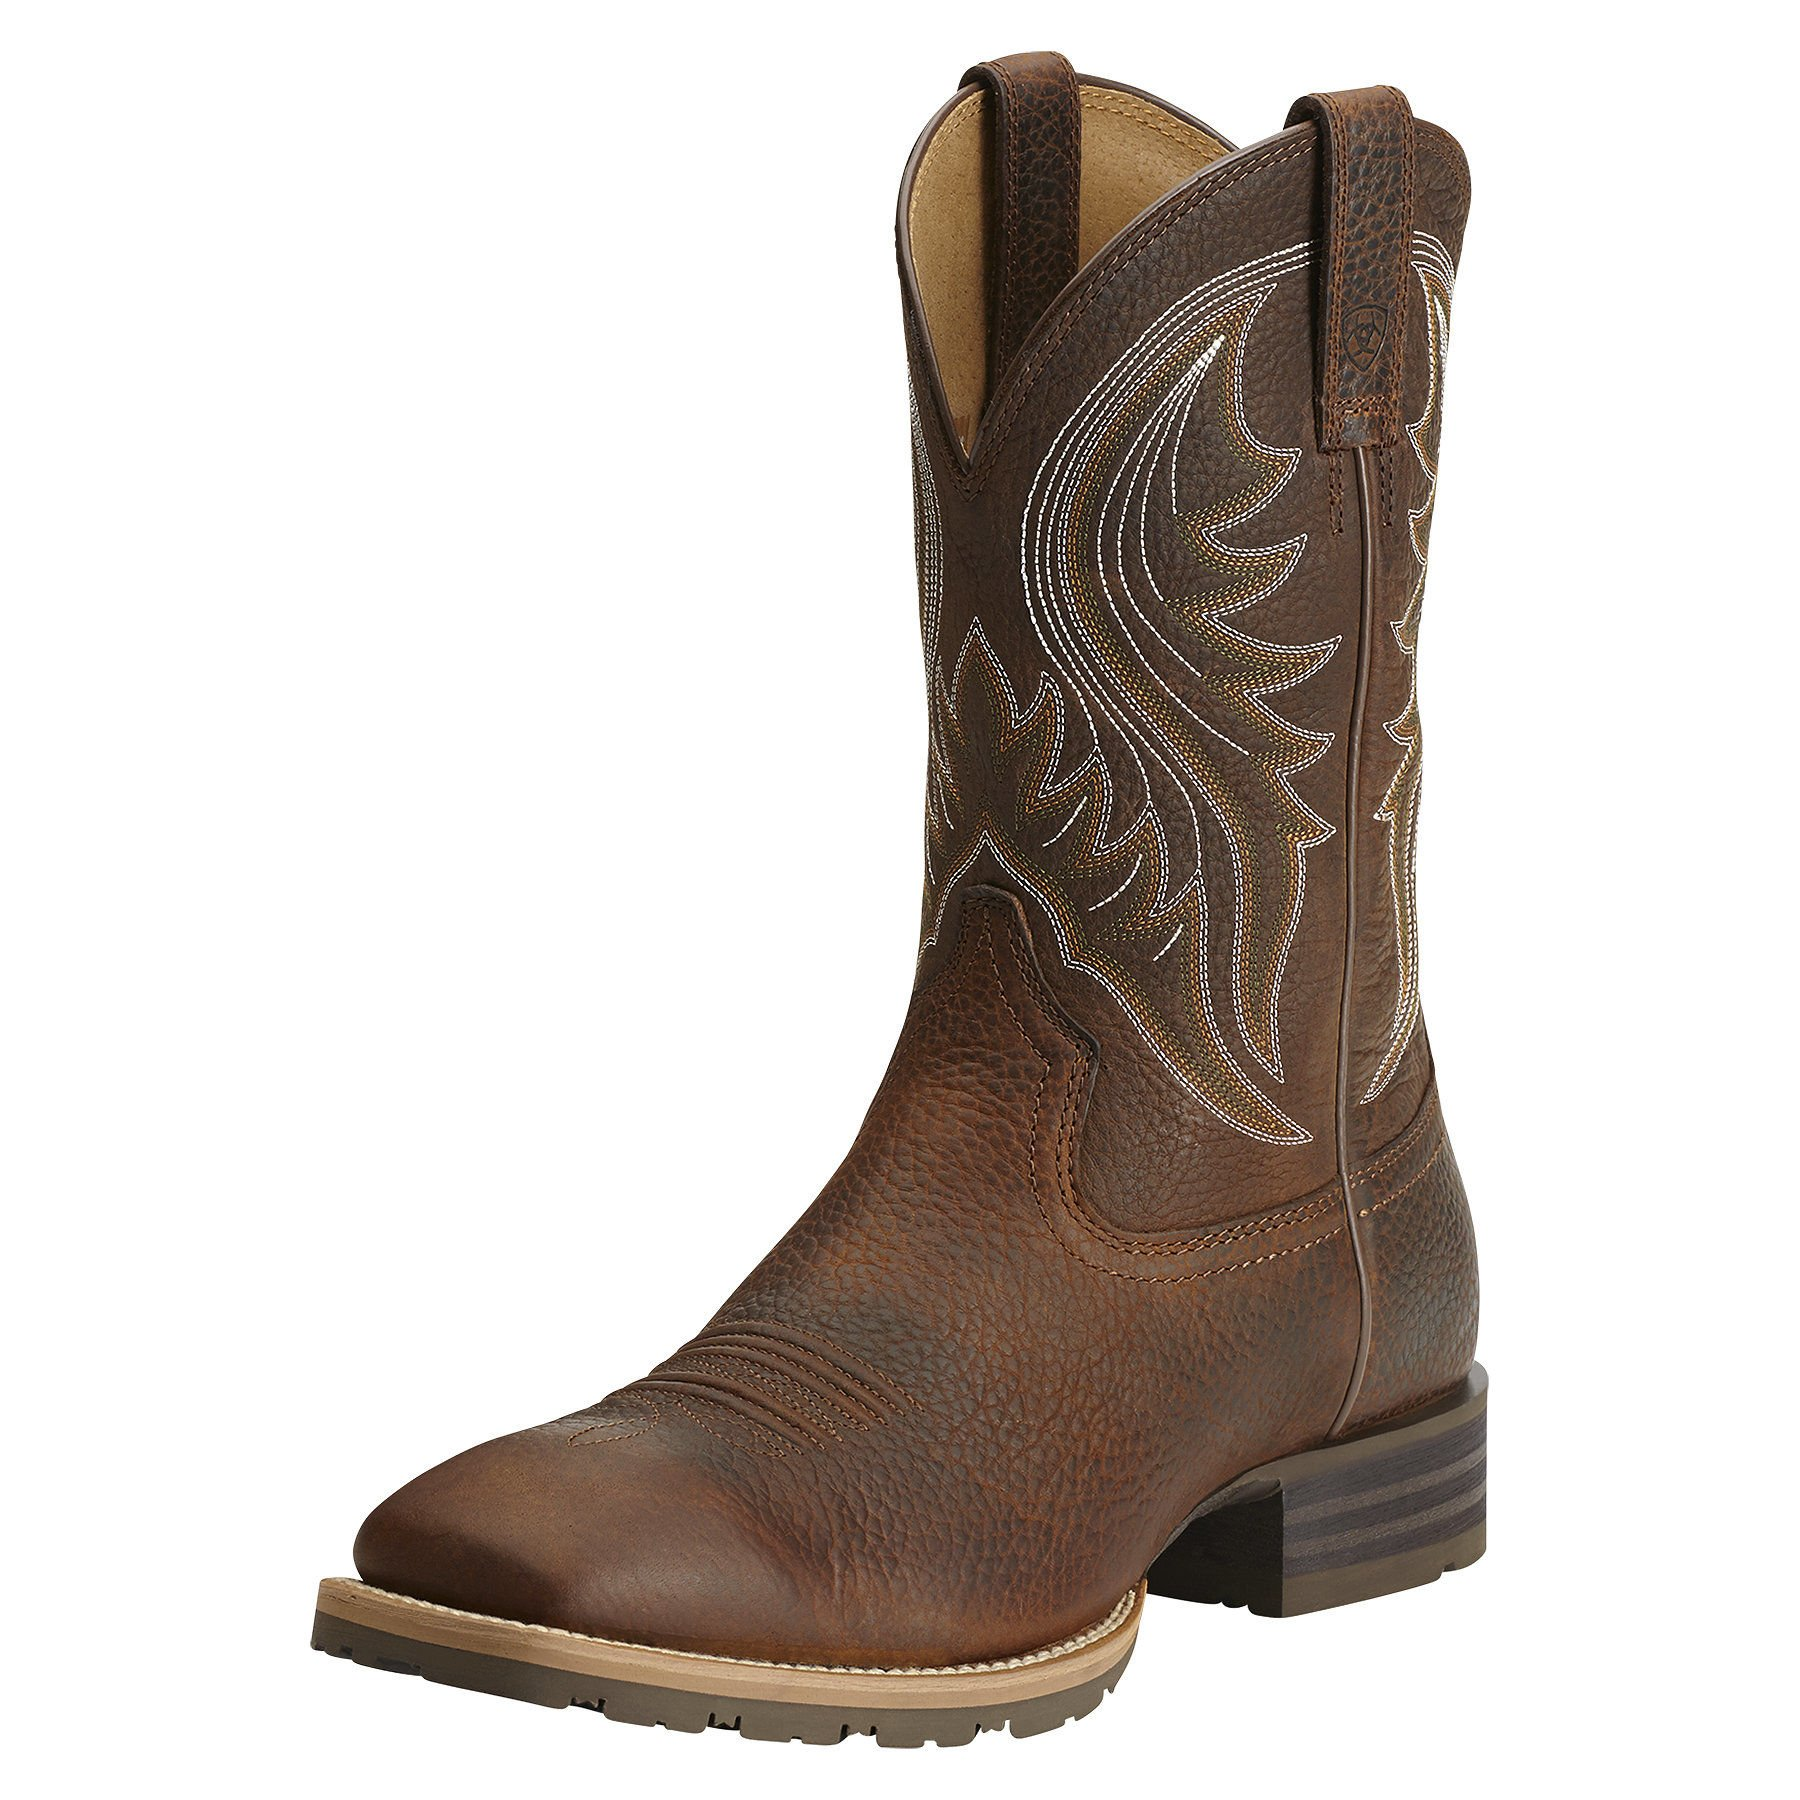 Ariat Men's Hybrid Rancher Western Boot, Brown Oiled Rowdy, 10.5 M US